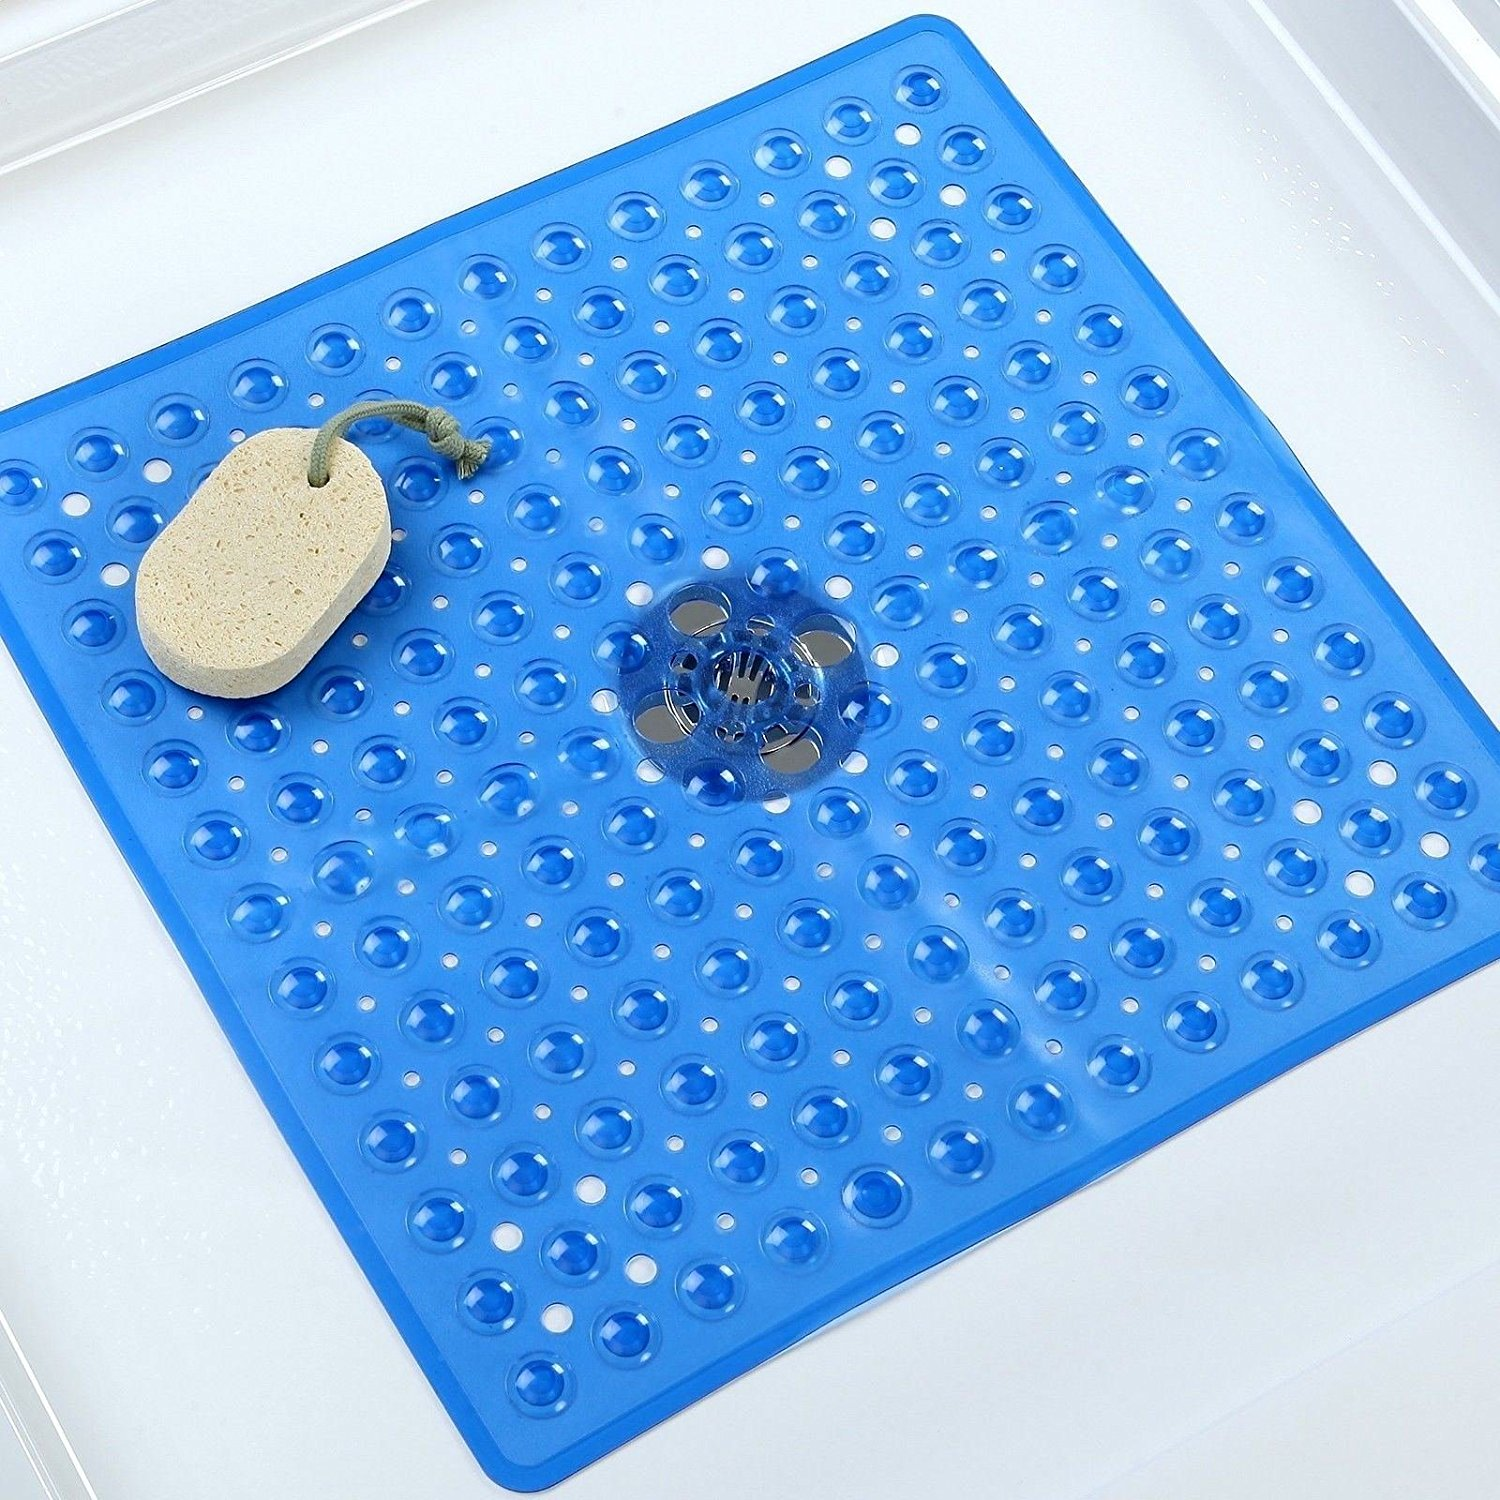 Cheap Square Shower Mat, find Square Shower Mat deals on line at ...